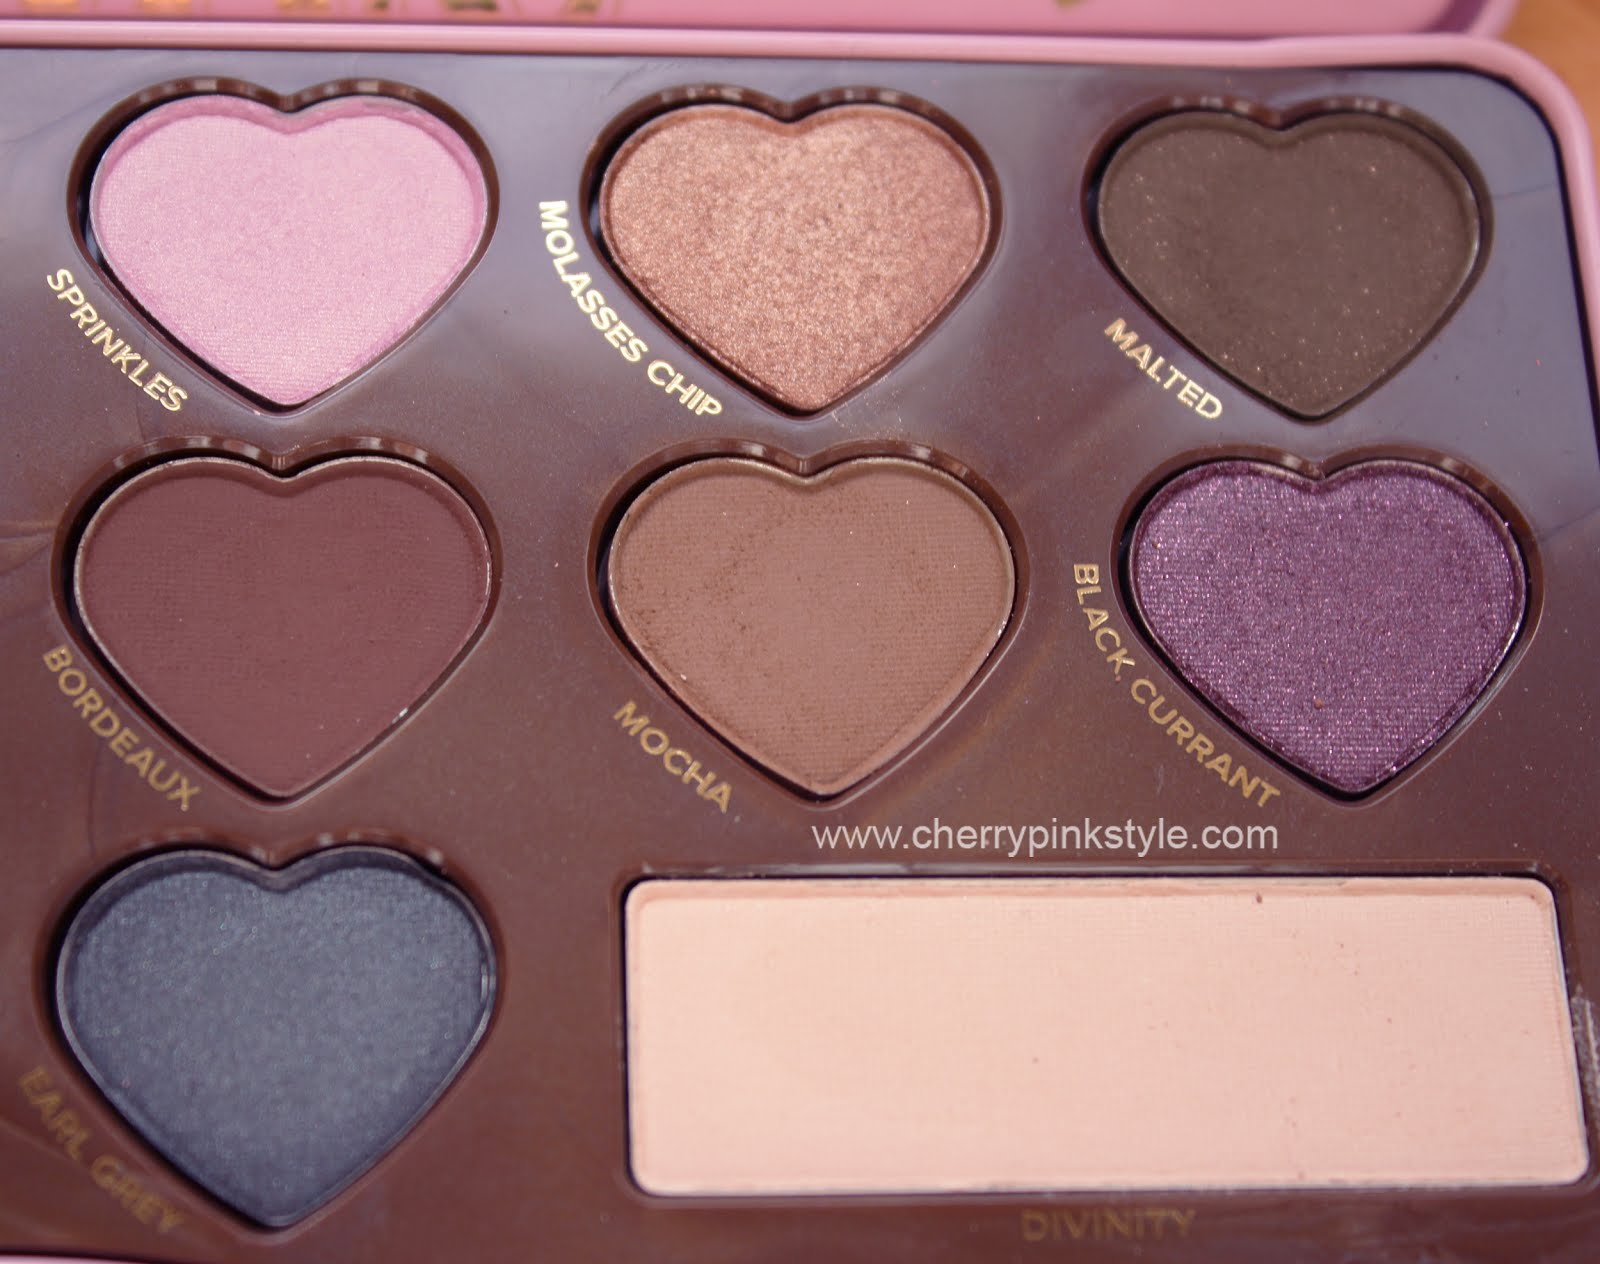 Too faced eye shadow